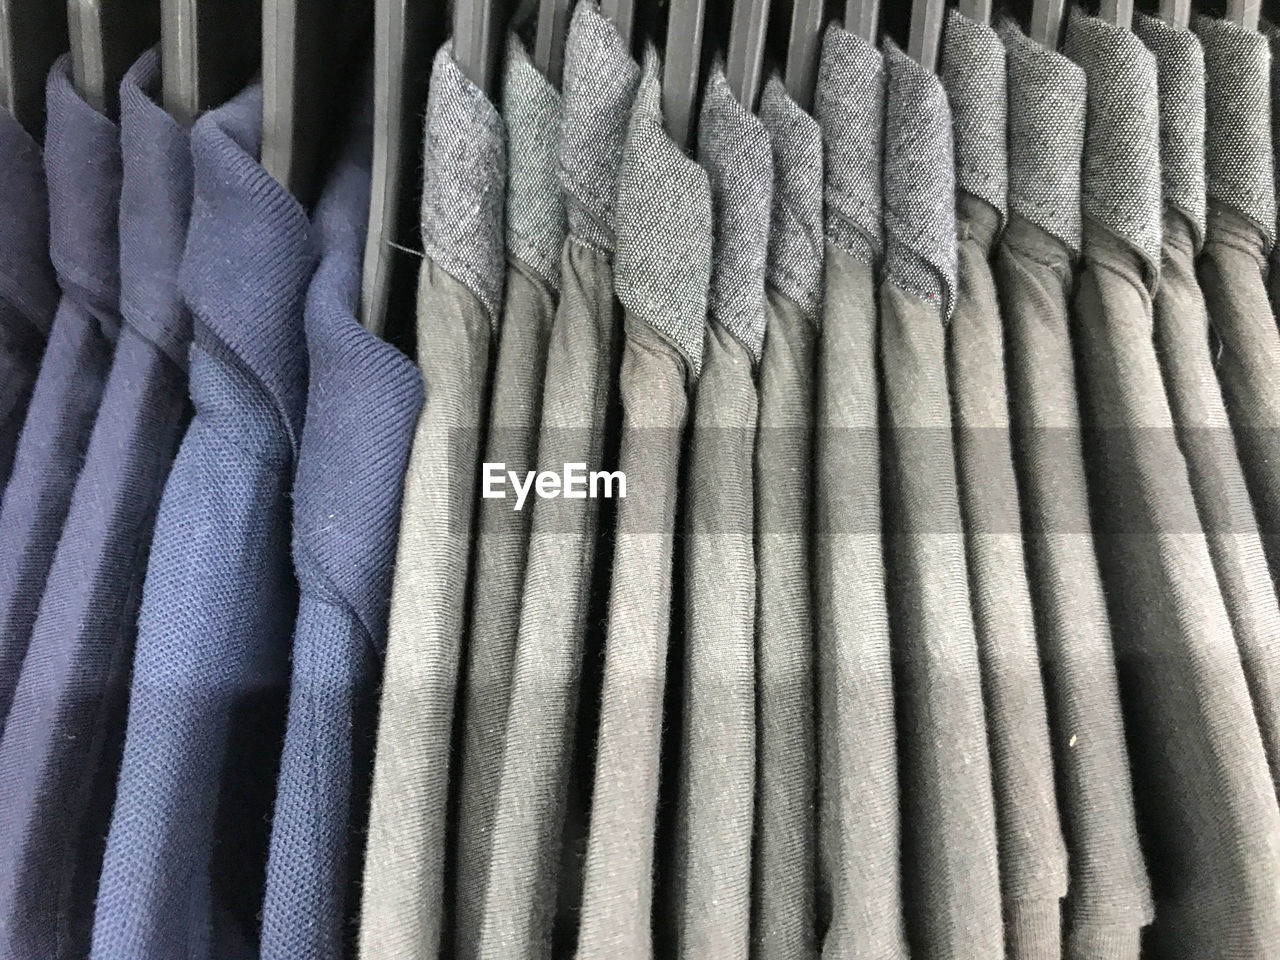 textile, no people, hanging, side by side, full frame, indoors, still life, clothing, backgrounds, large group of objects, in a row, close-up, pattern, choice, variation, arrangement, order, material, repetition, retail, menswear, warm clothing